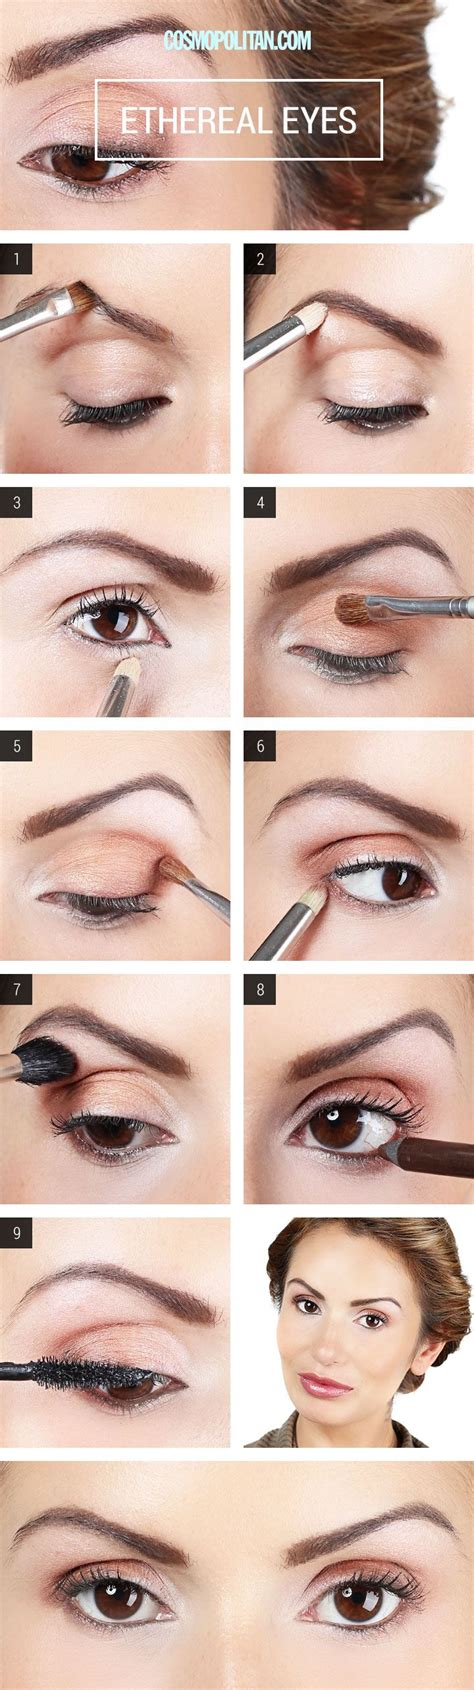 How To Apply Bedroom Makeup Makeup How To Ethereal